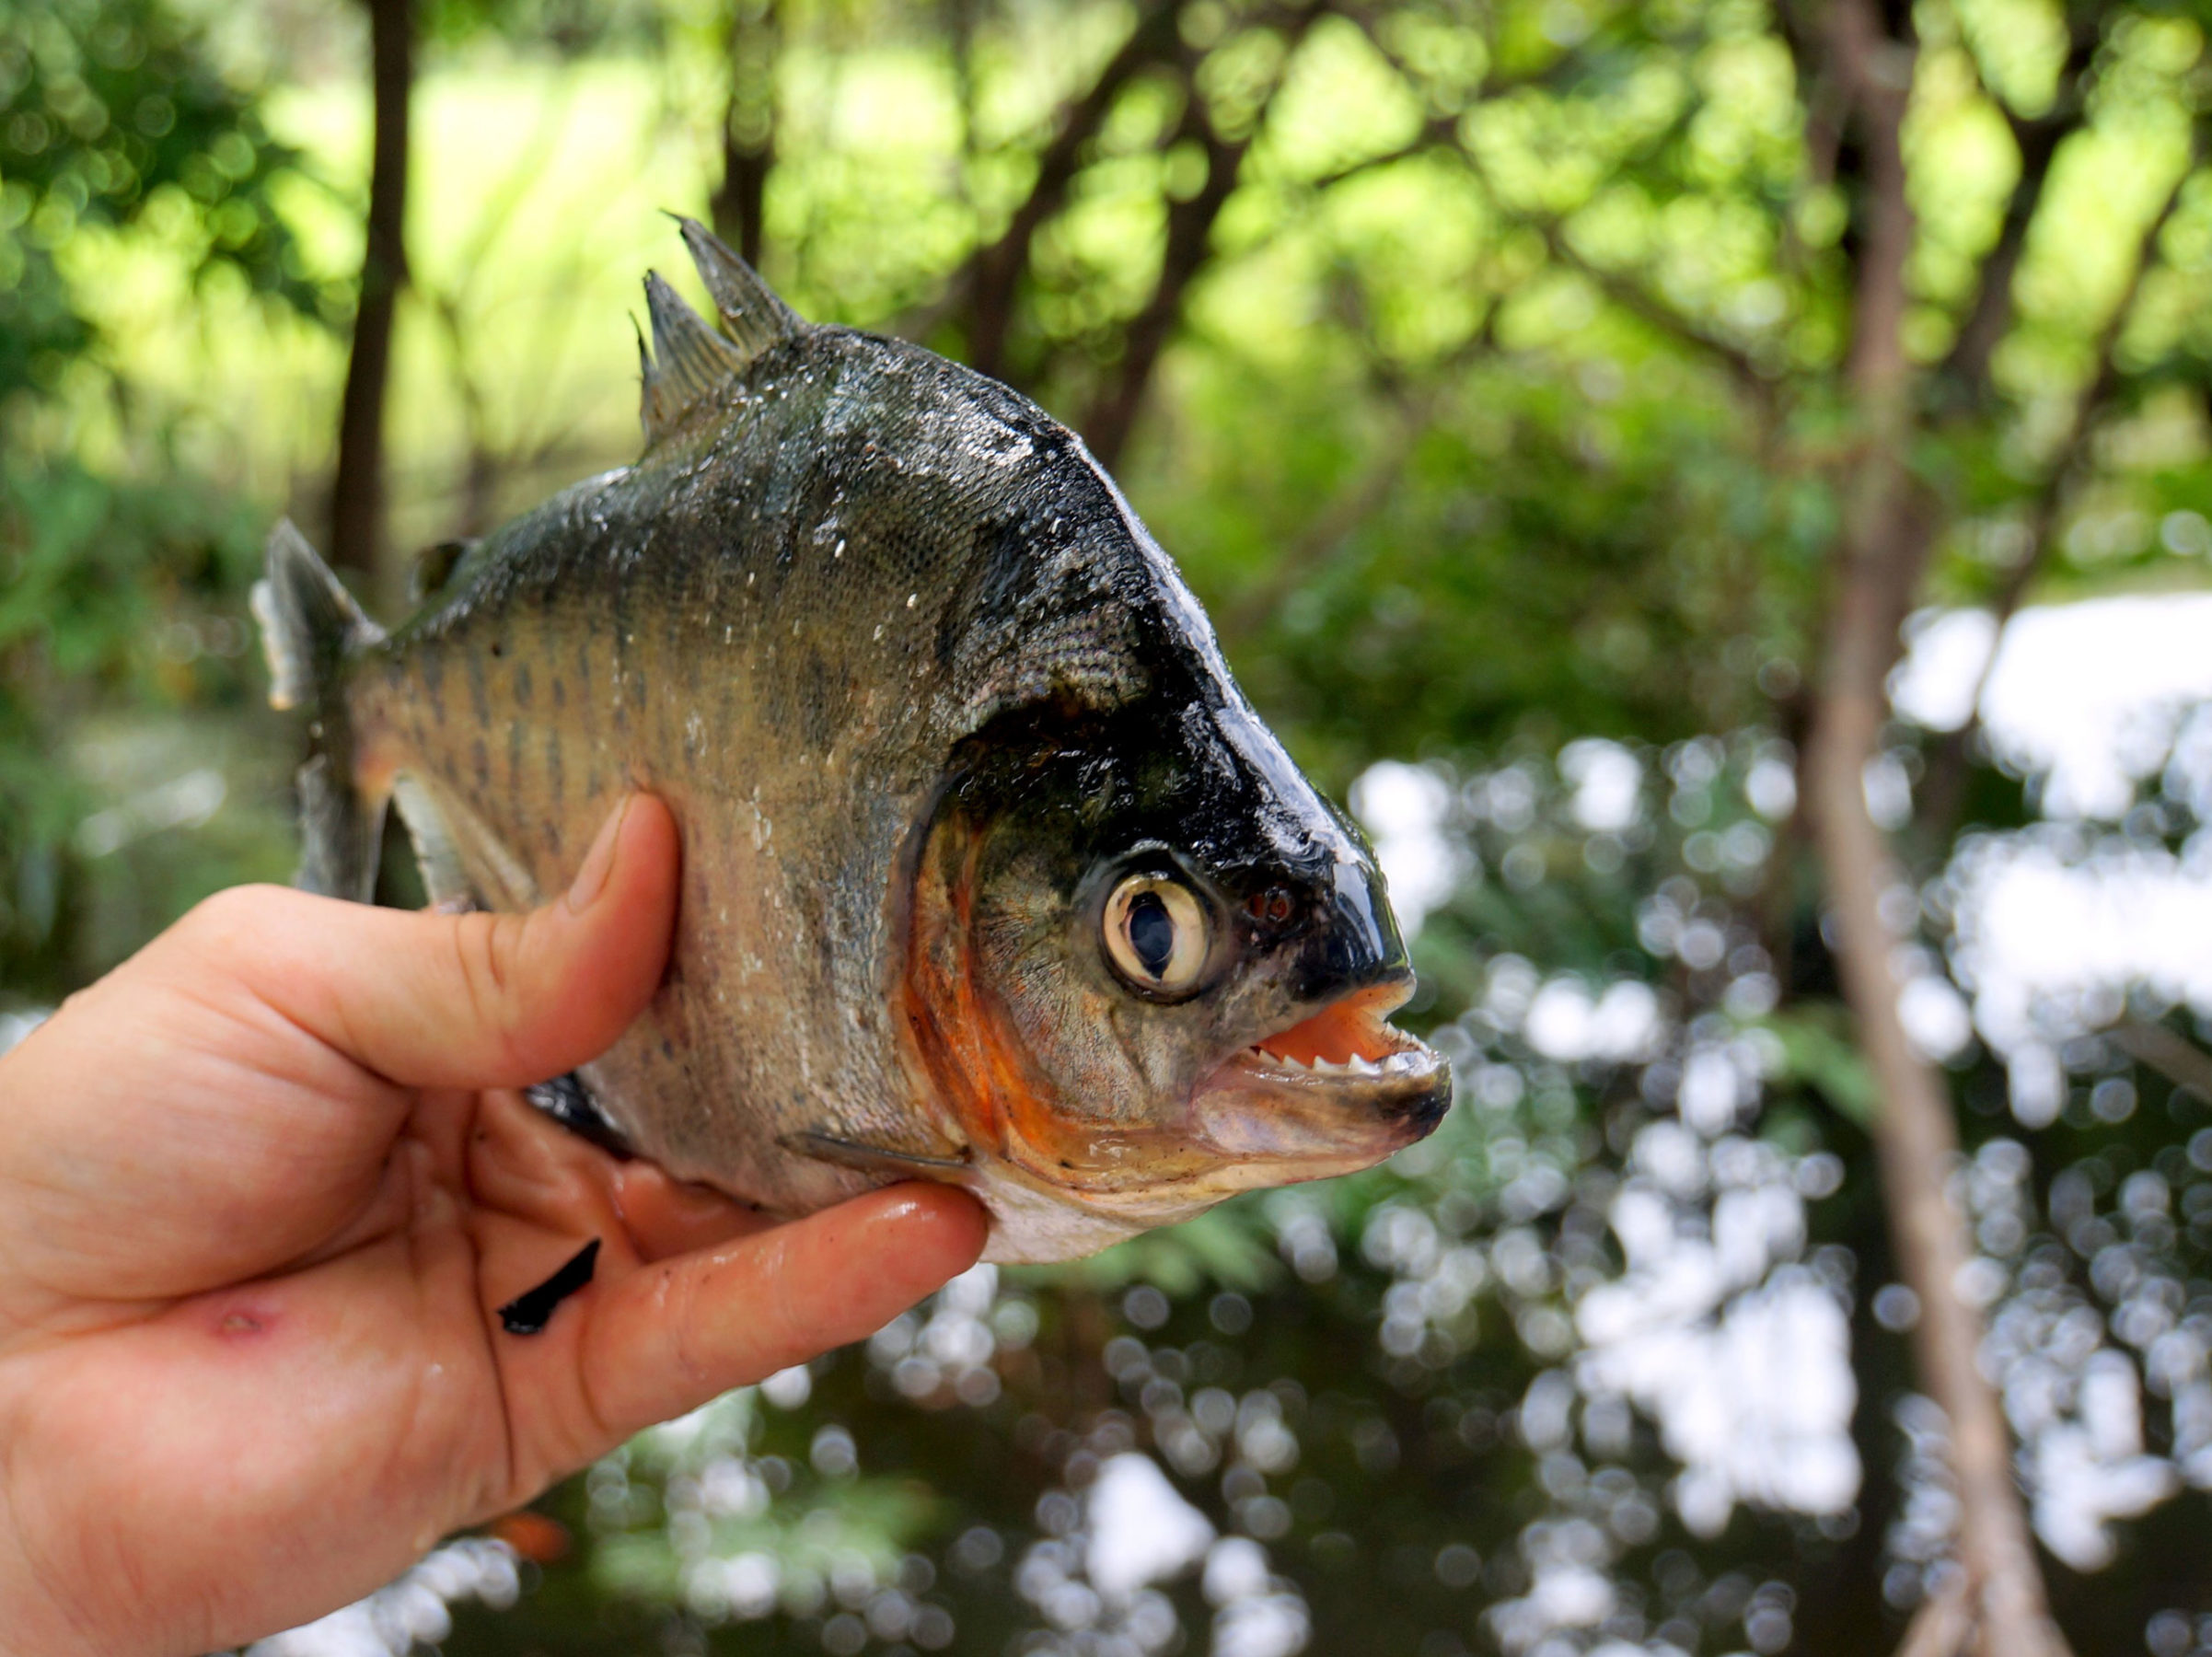 A hand holding a piranha in the Amazon jungle